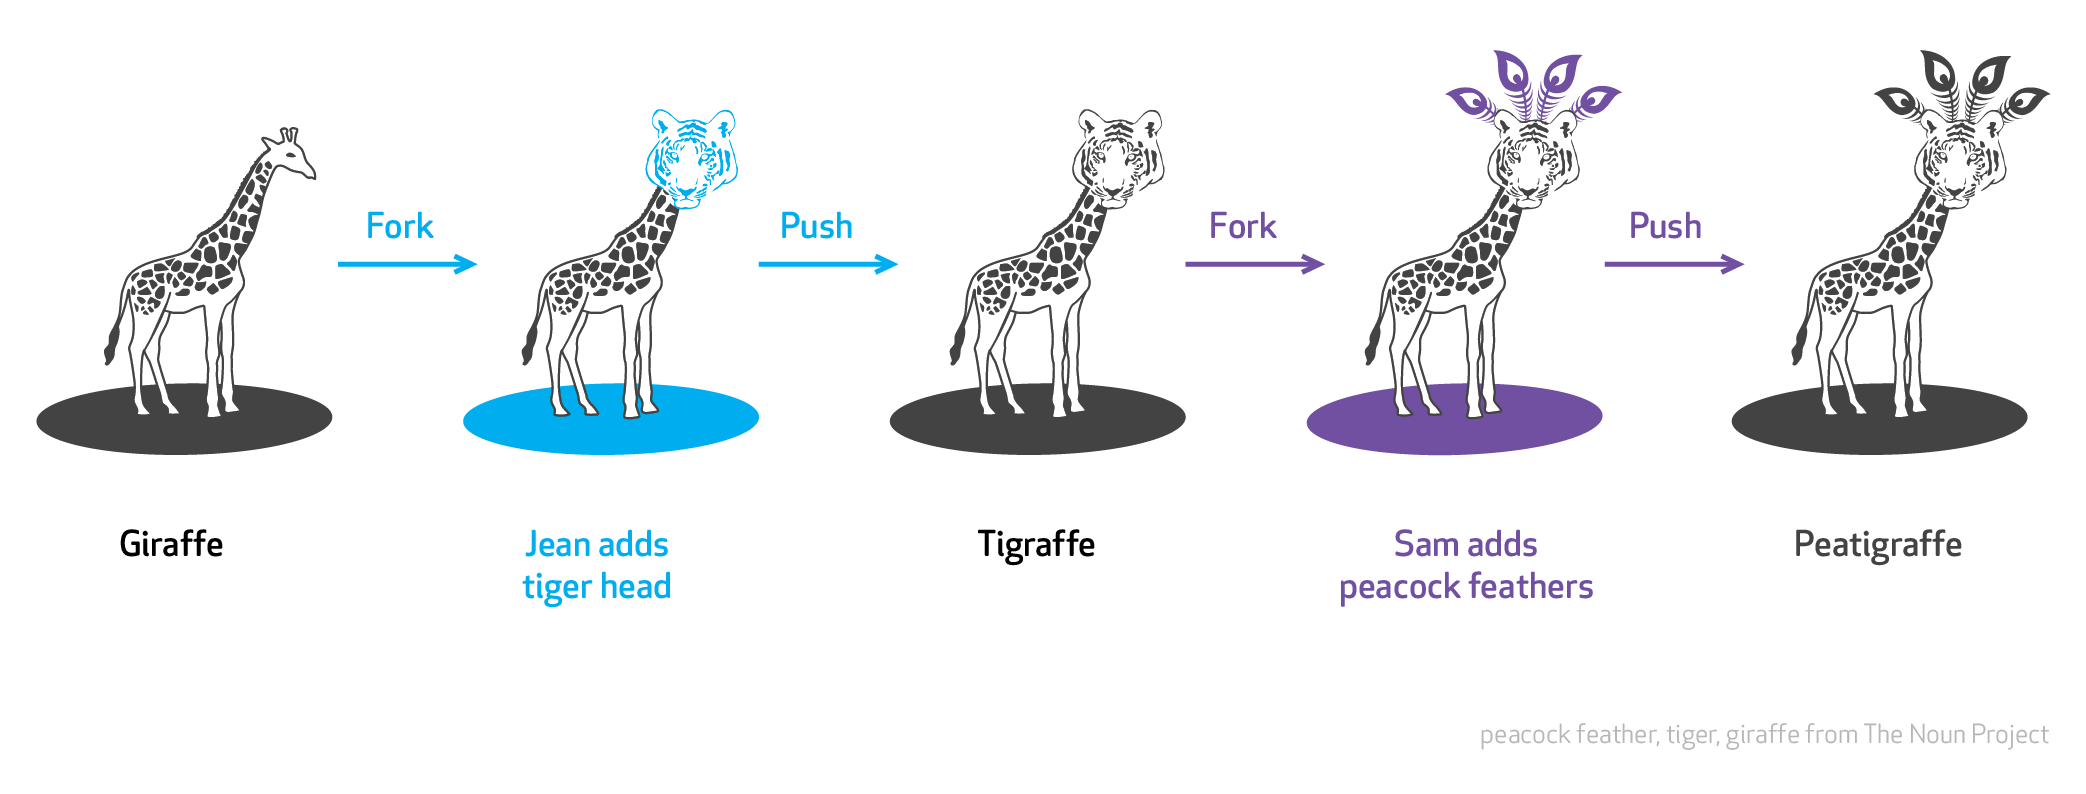 The GitHub flow represented as a giraffe that gets iterated on as it moves through the process. Image credit goes to diy.org.